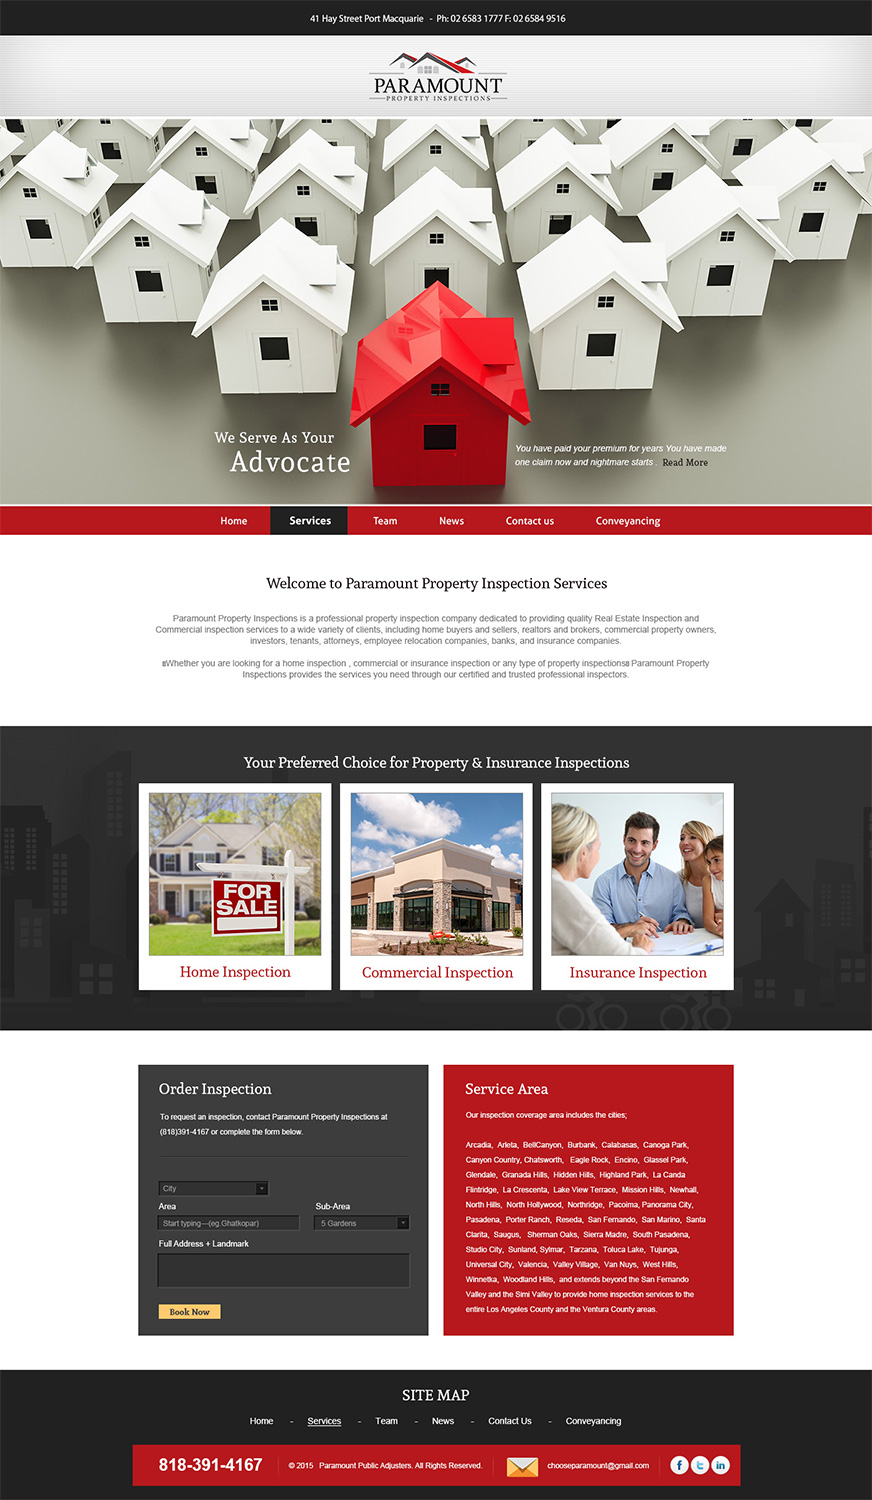 Web Design By Esolbiz For Home Inspection Company Performing Home Inspection  For Home Buyers And Sellers